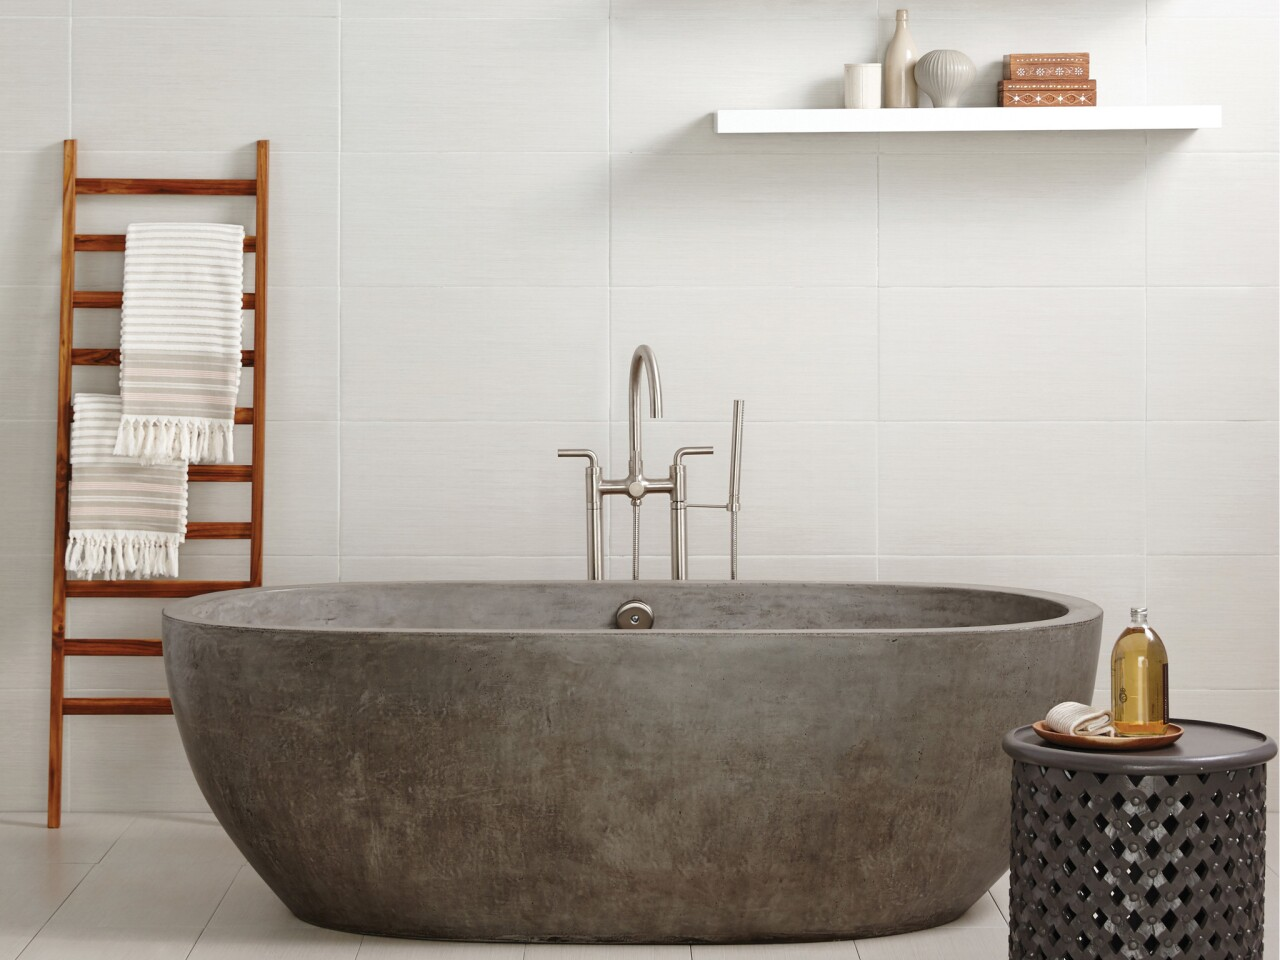 The Avalon 72-inch concrete soaking tub is hand formed and polished. $8,990 by NativeTrails.com.